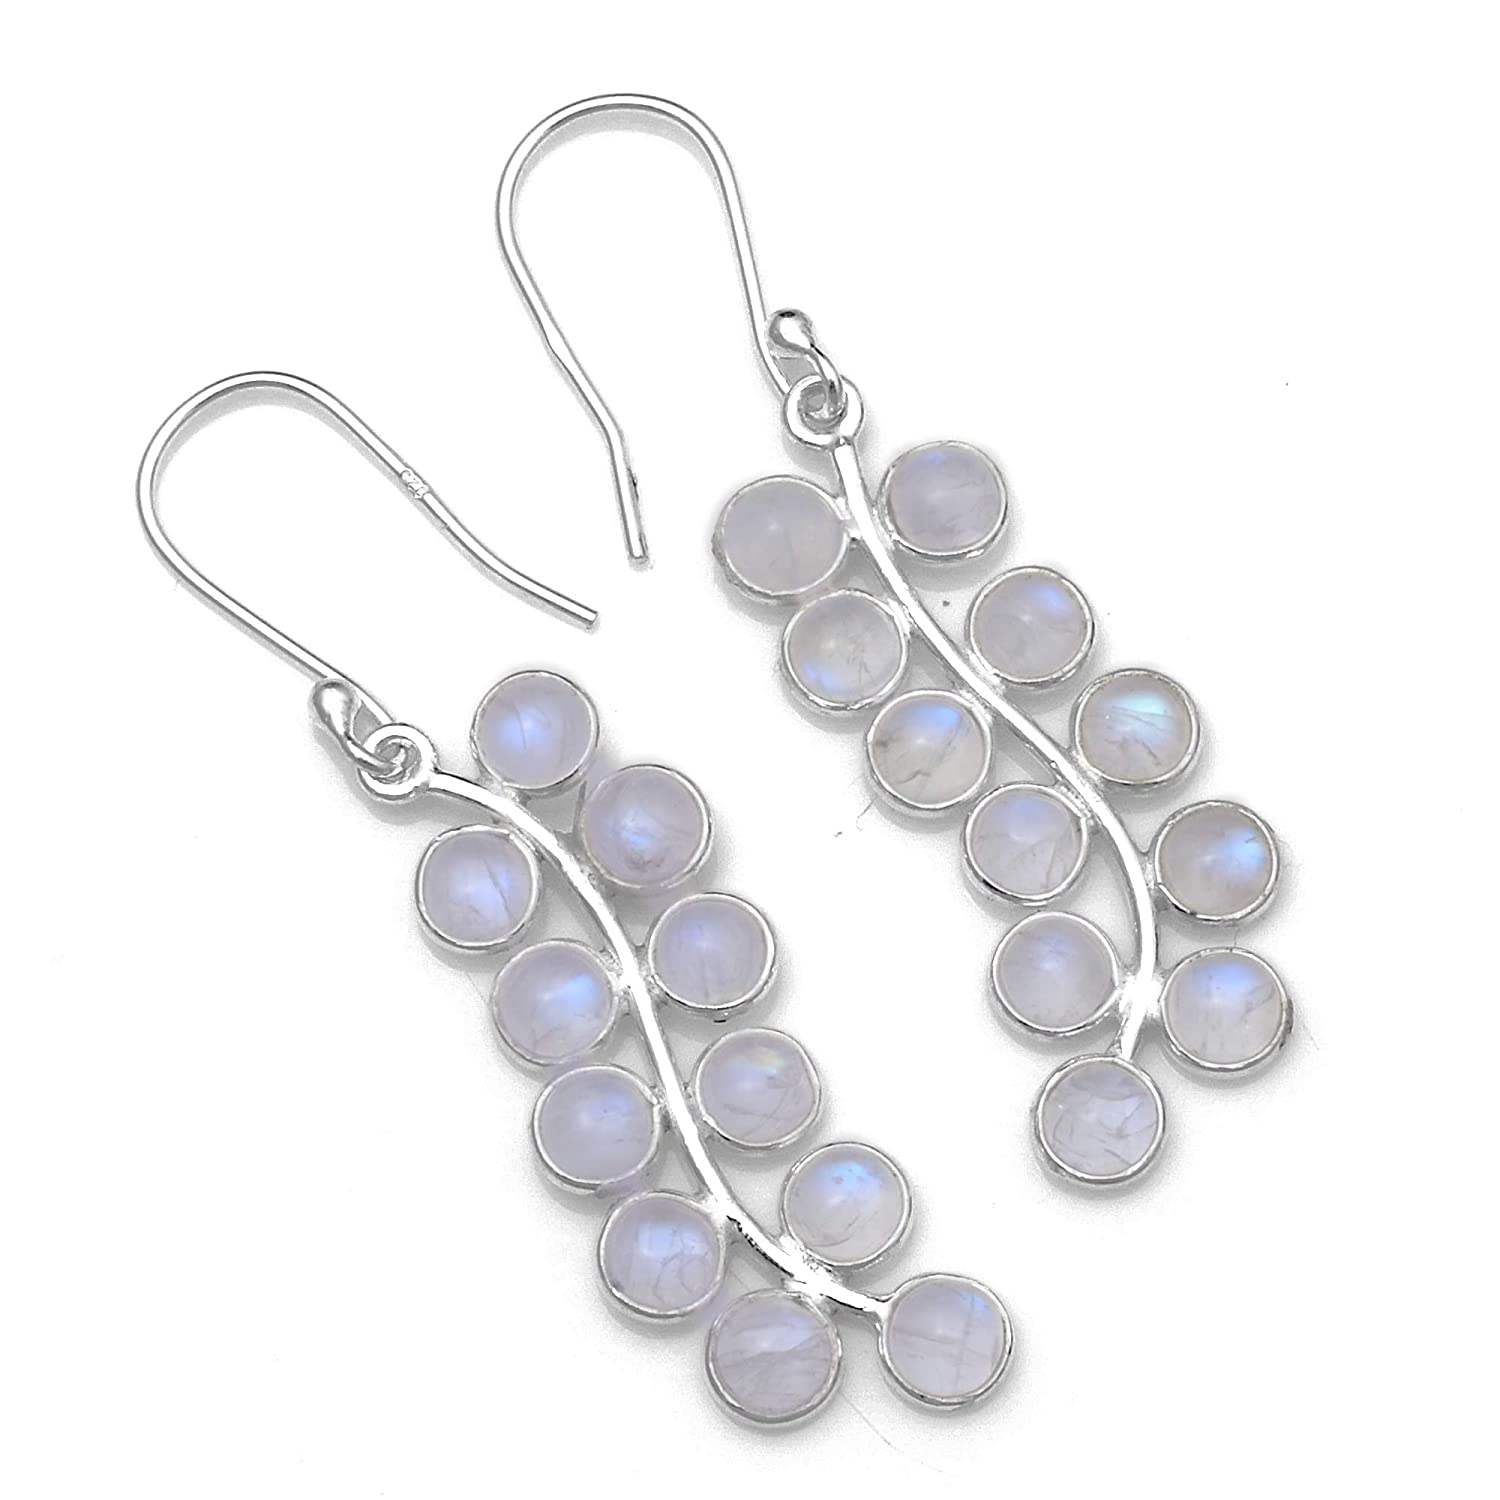 Silver Palace Sterling Silver Natural Rainbow Moonstone Earrings for Women and Girls